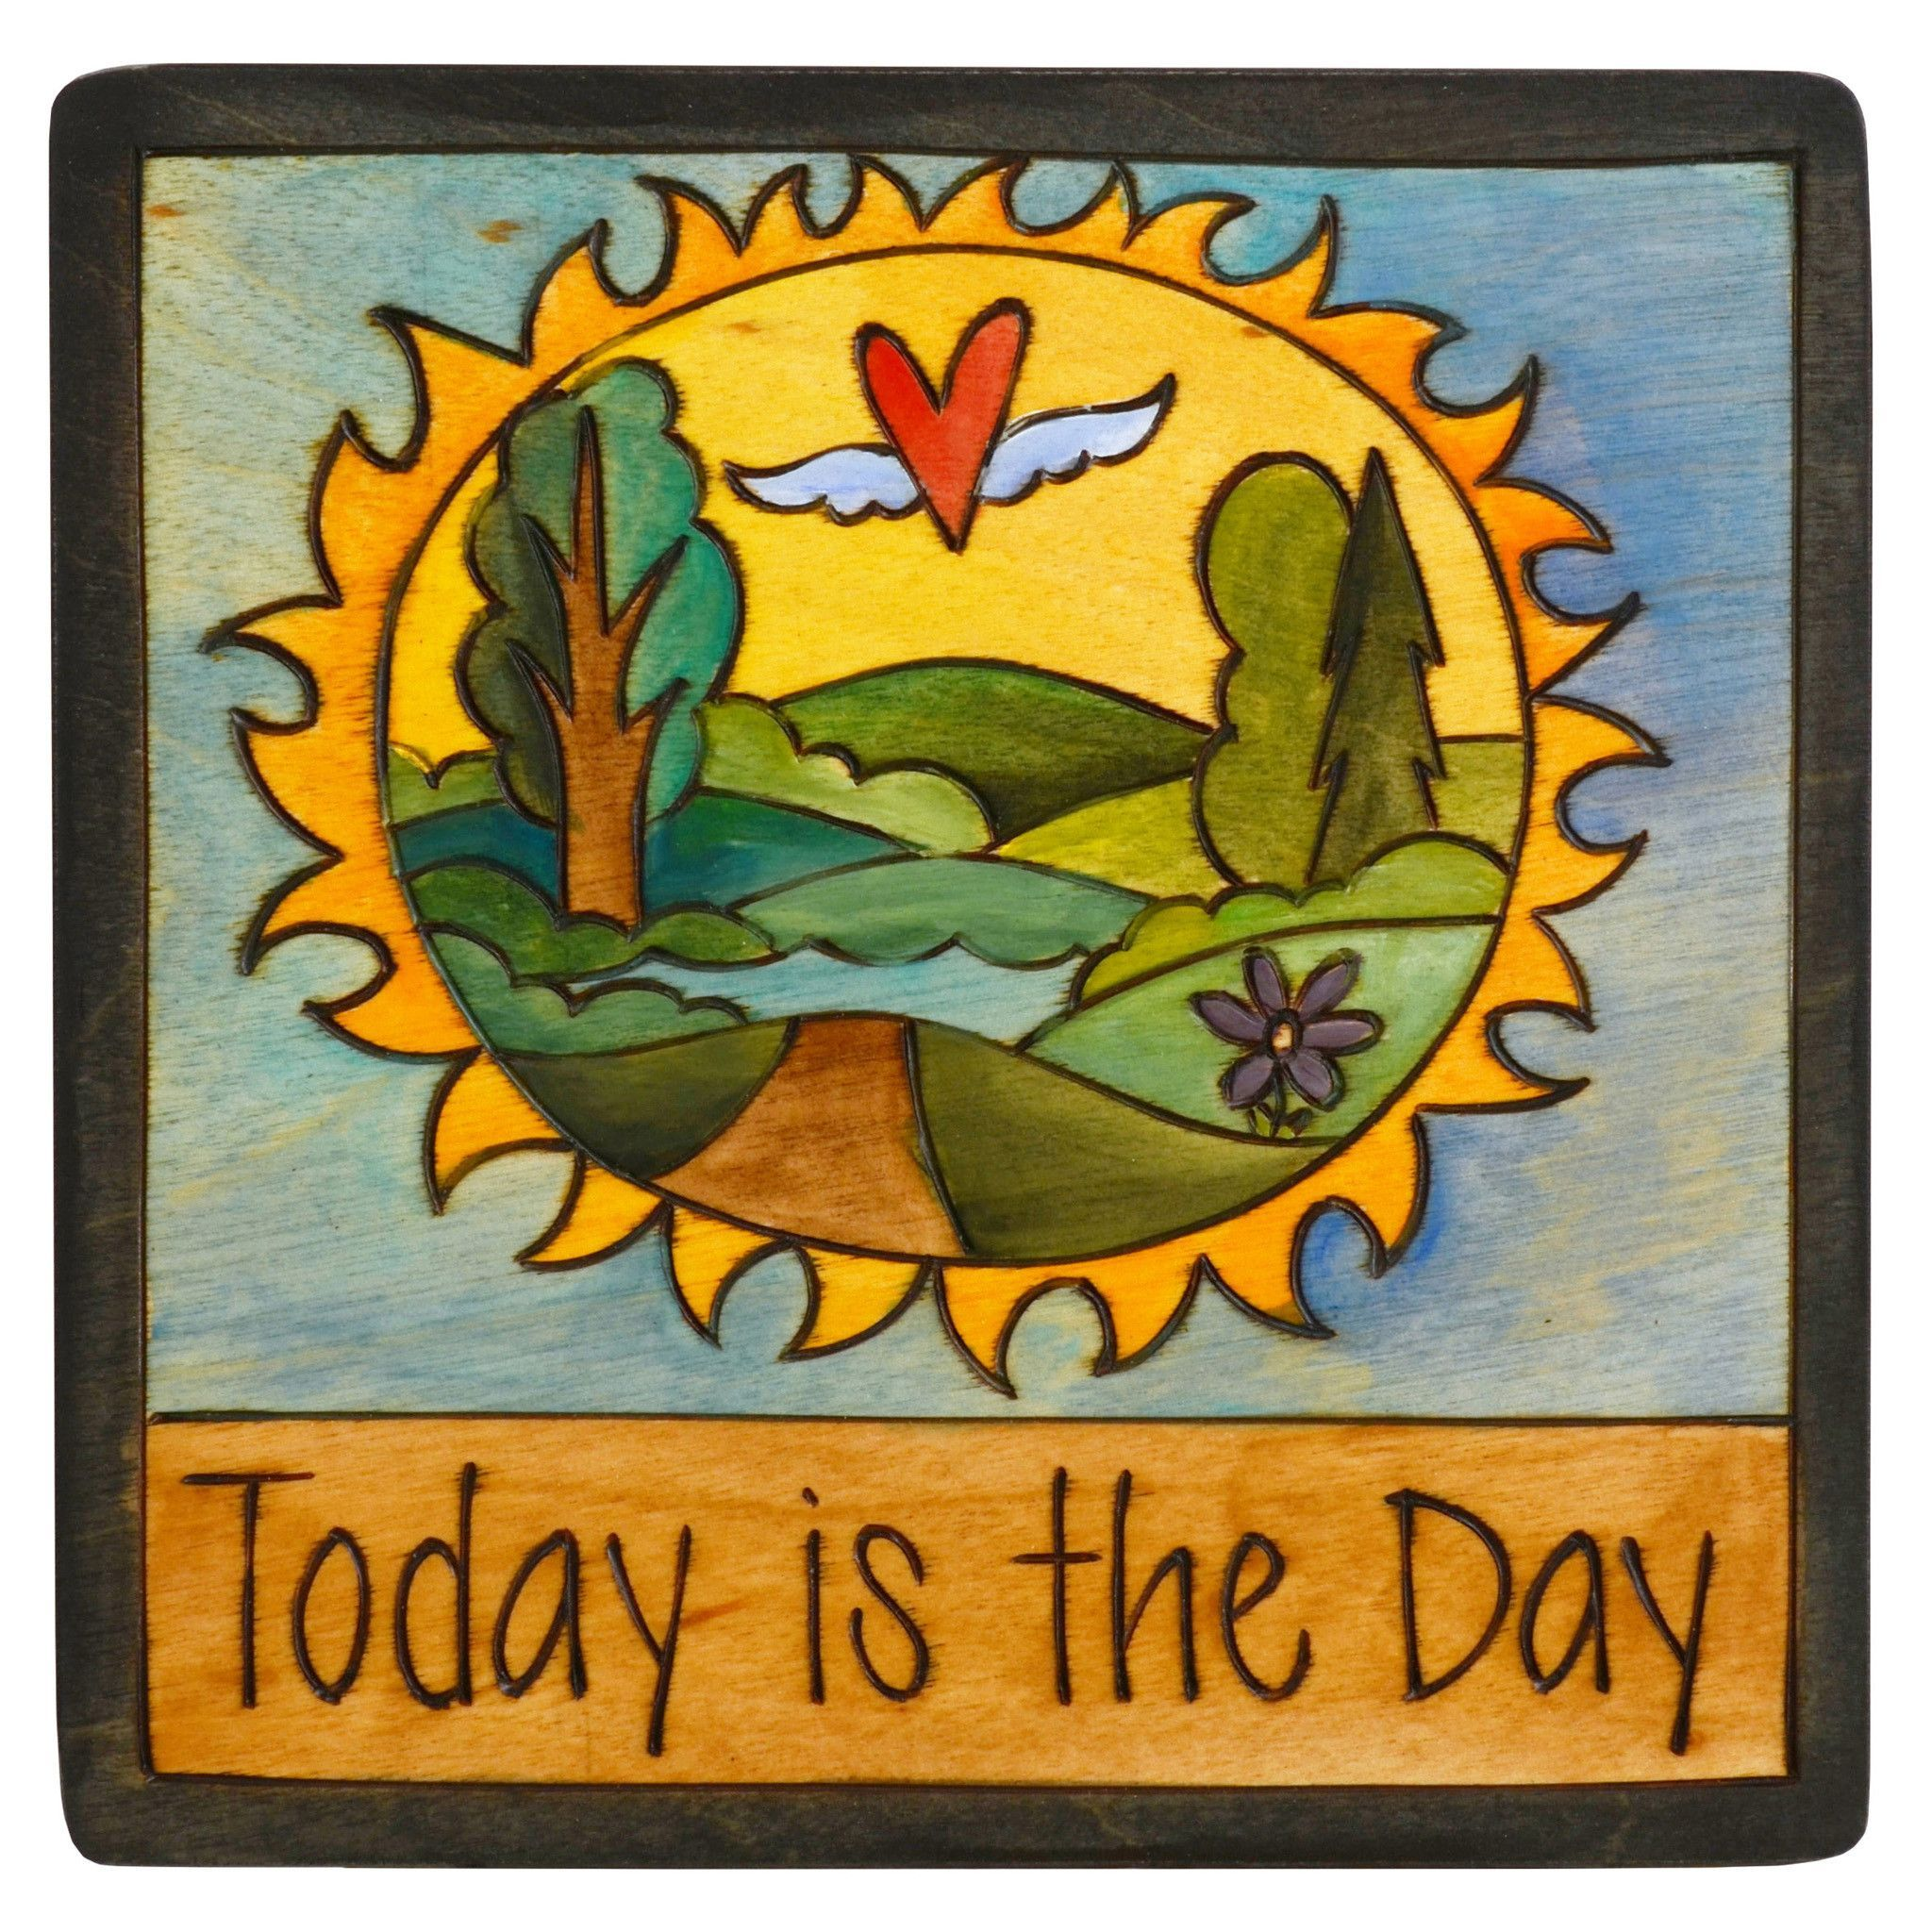 Today is the Day Plaque by Sticks, PLQ001-D700410 | Artisan, Sticks ...